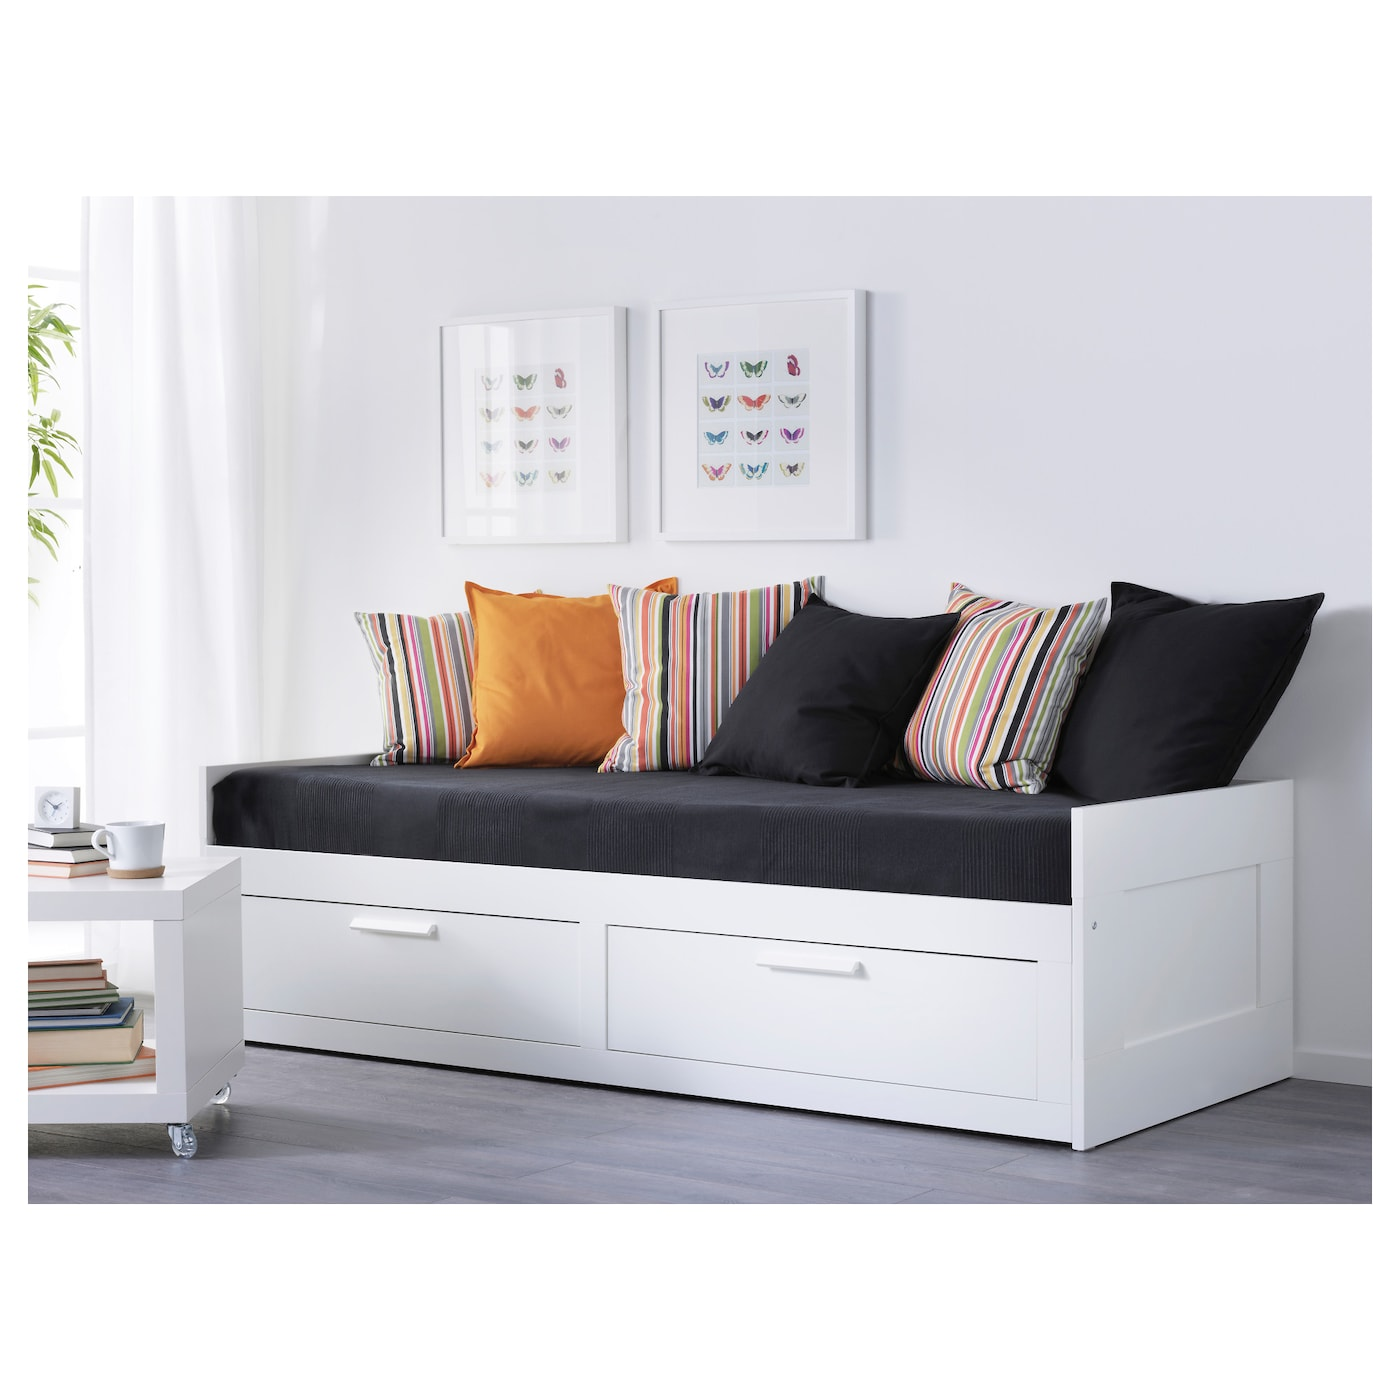 Brimnes White Day Bed With 2 Drawers